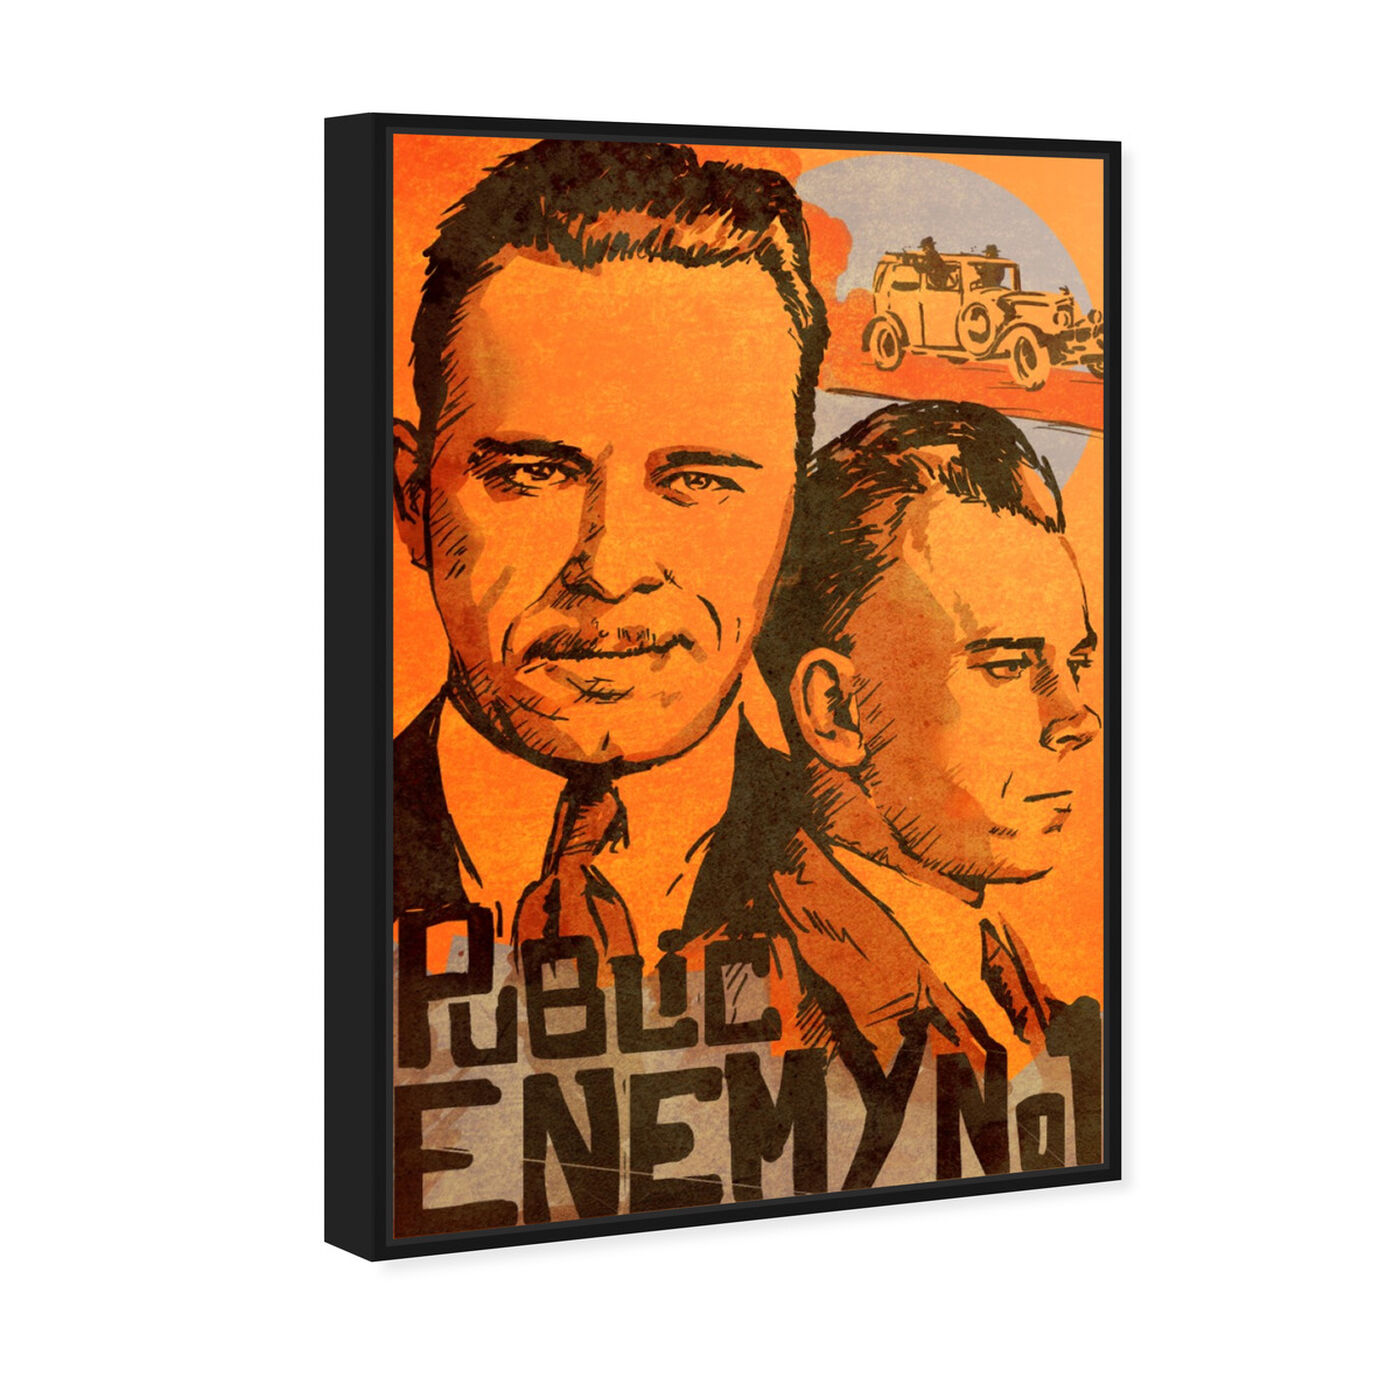 Angled view of Dillinger Public Enemy featuring movies and tv and action movies art.